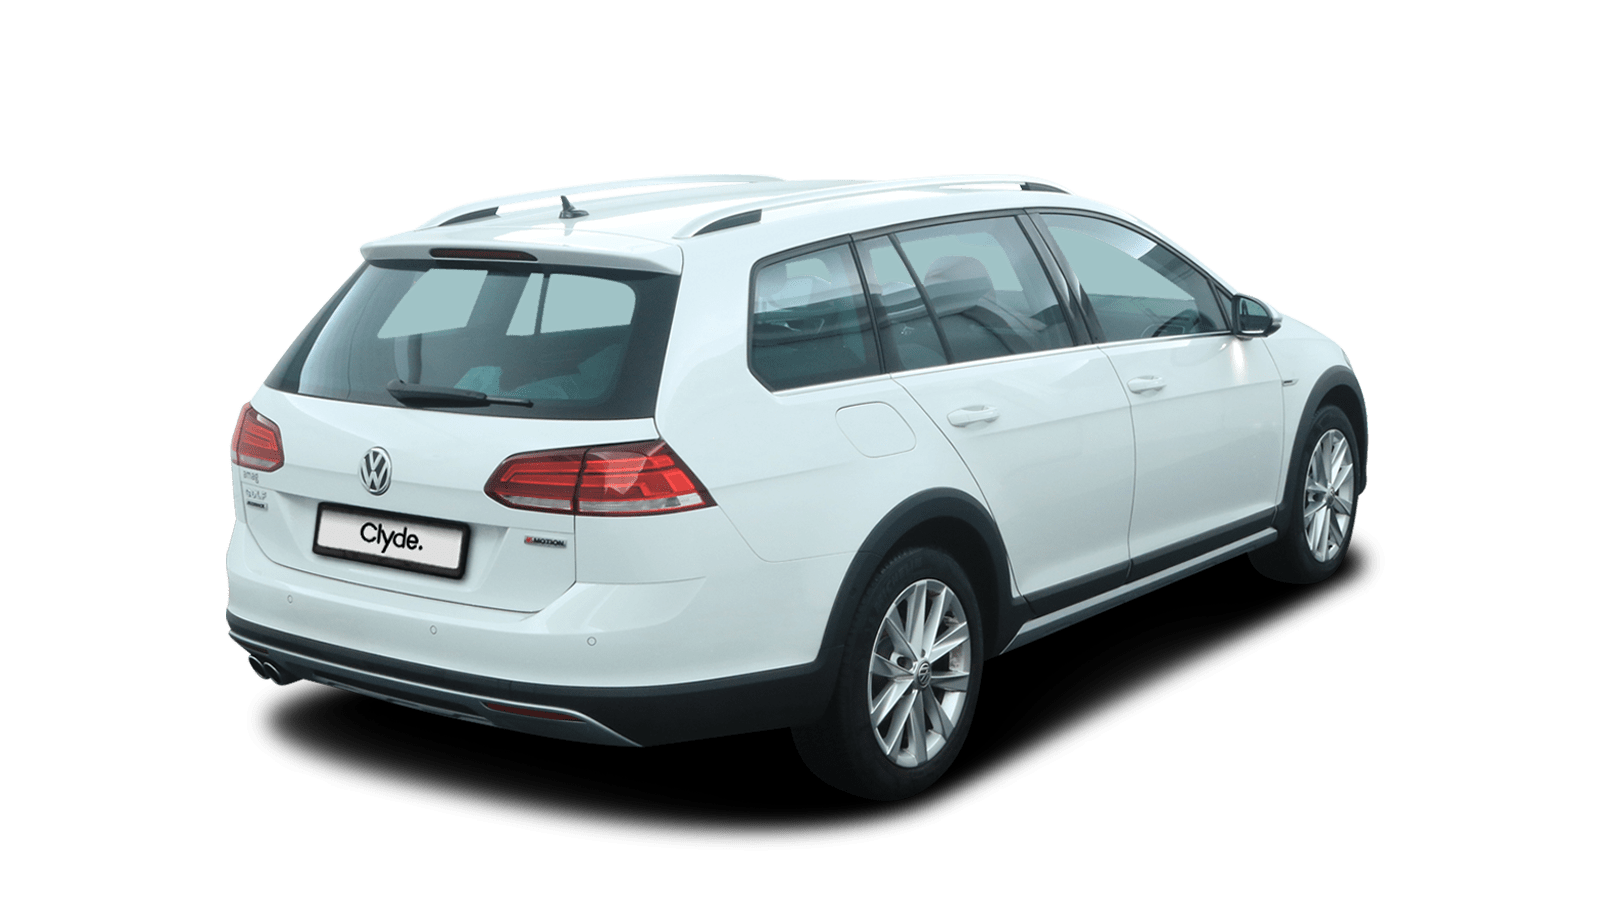 VW Golf Variant Alltrack White back - Clyde car subscription